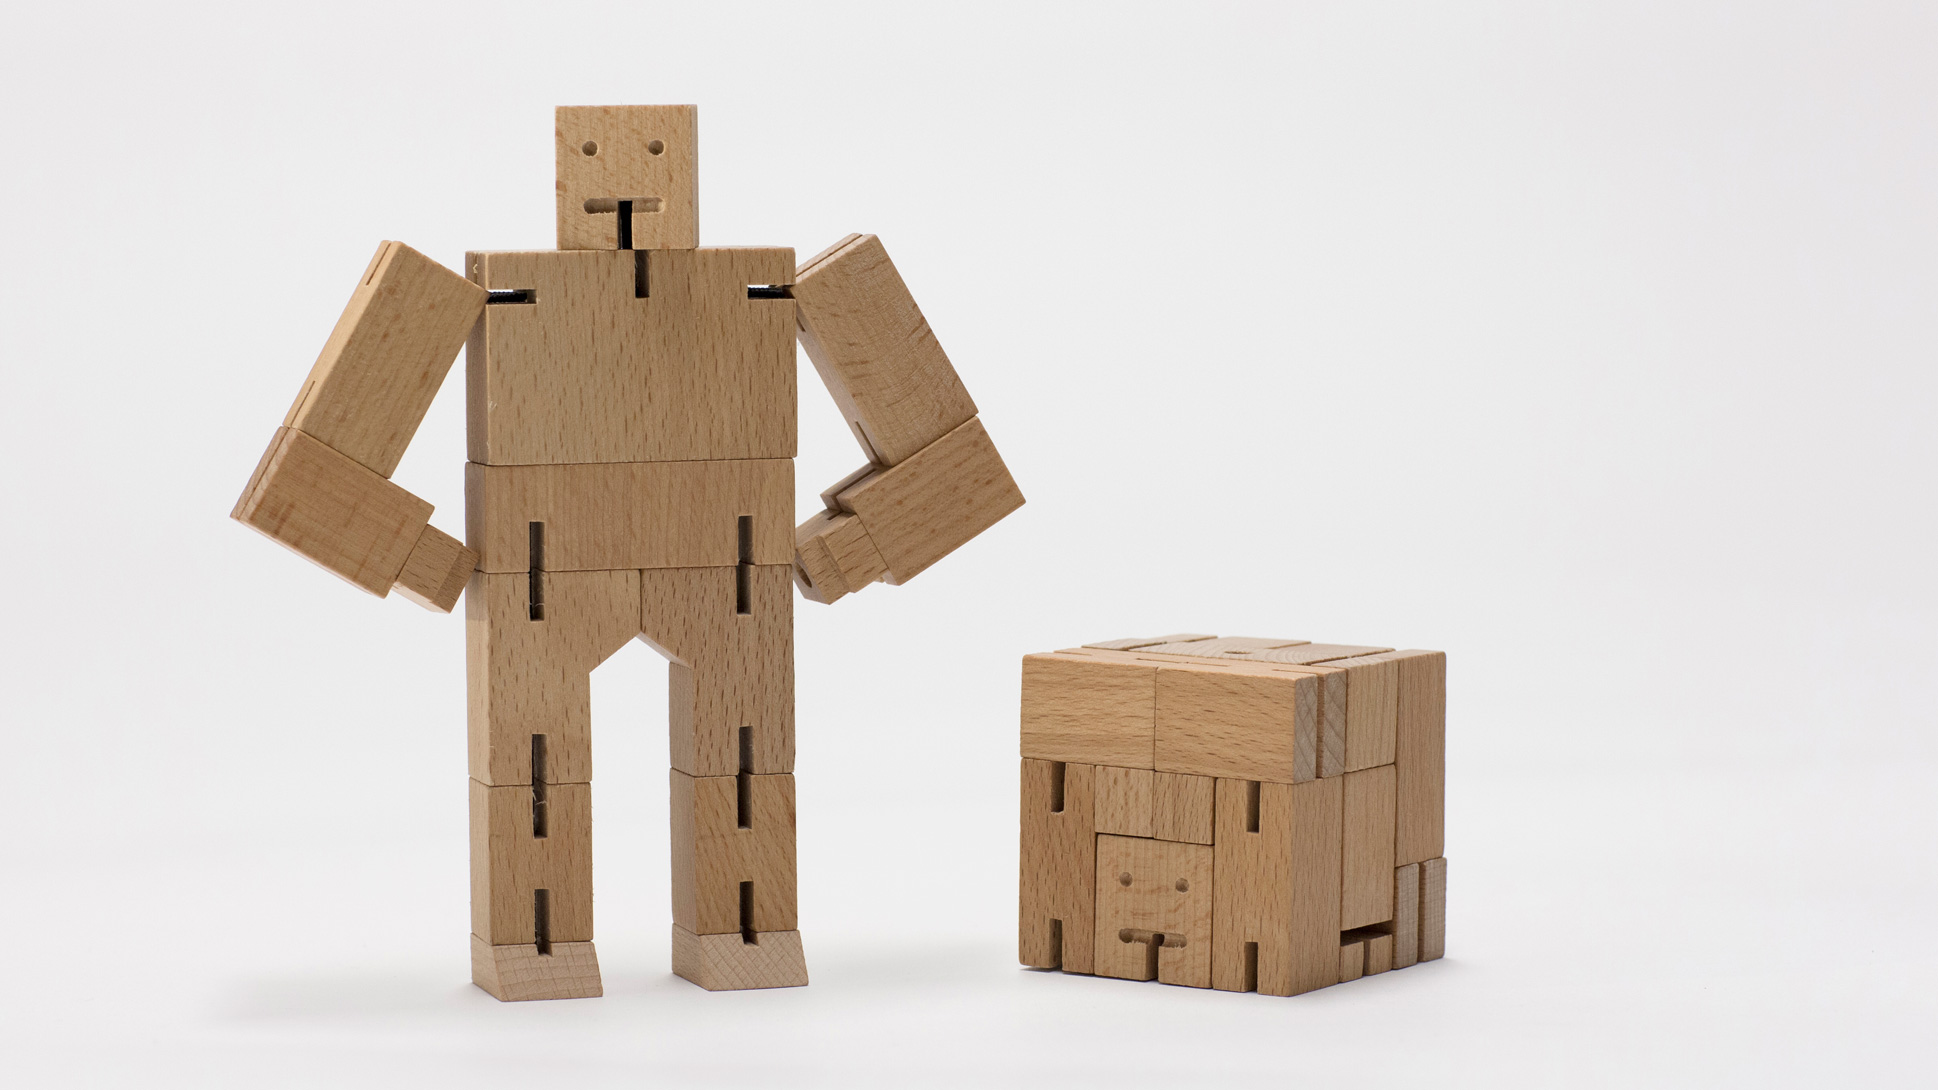 Cubebot by David Weeks